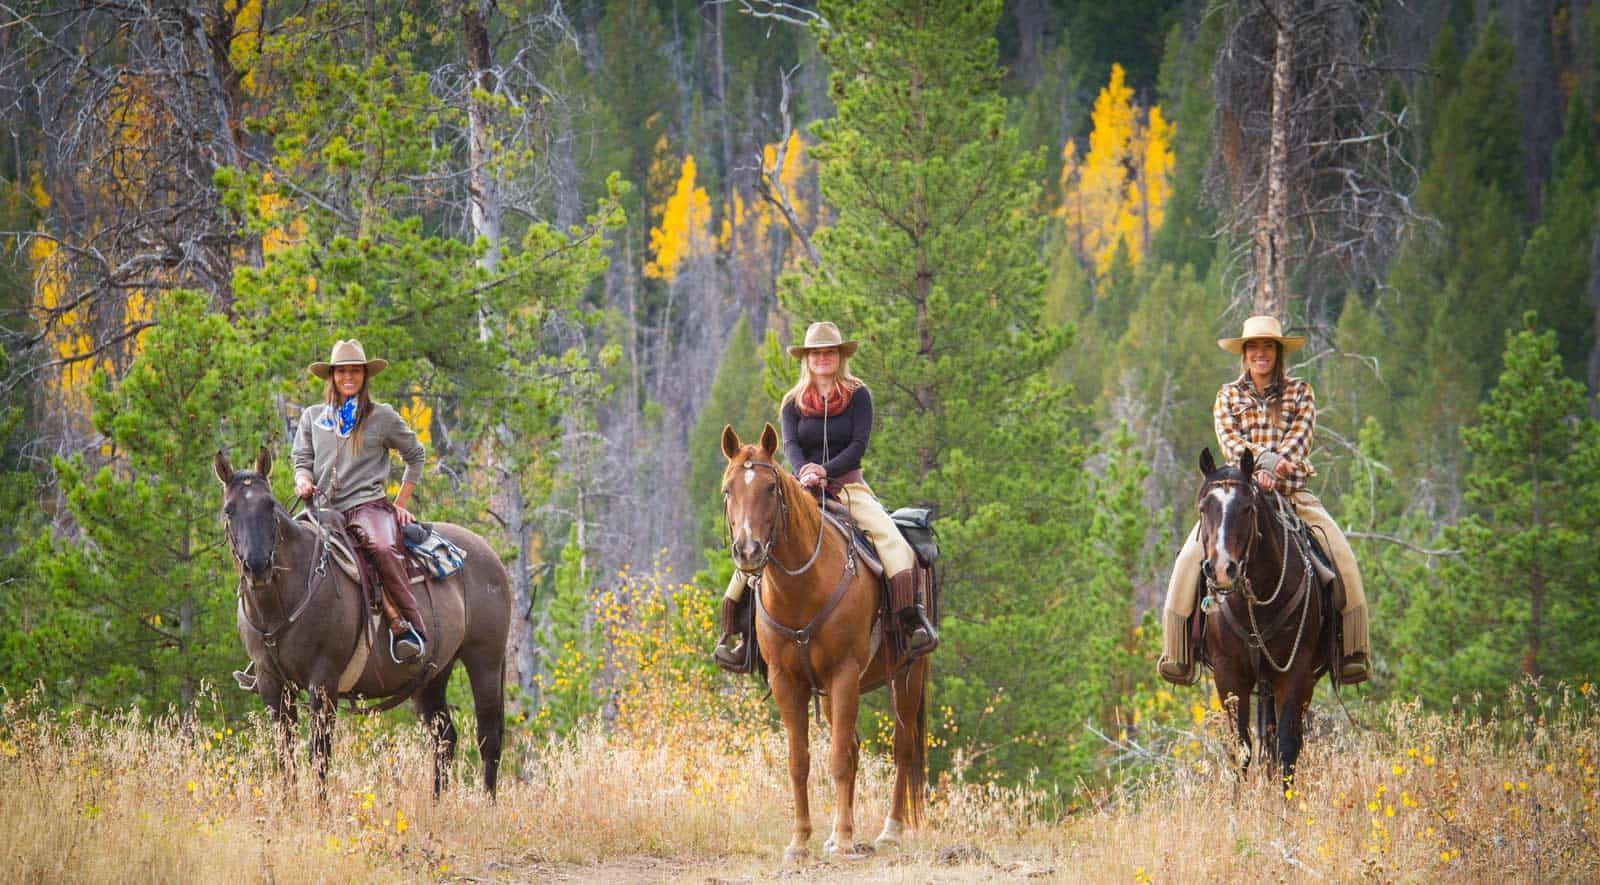 Family Vacations at All-Inclusive Luxury Dude Ranch